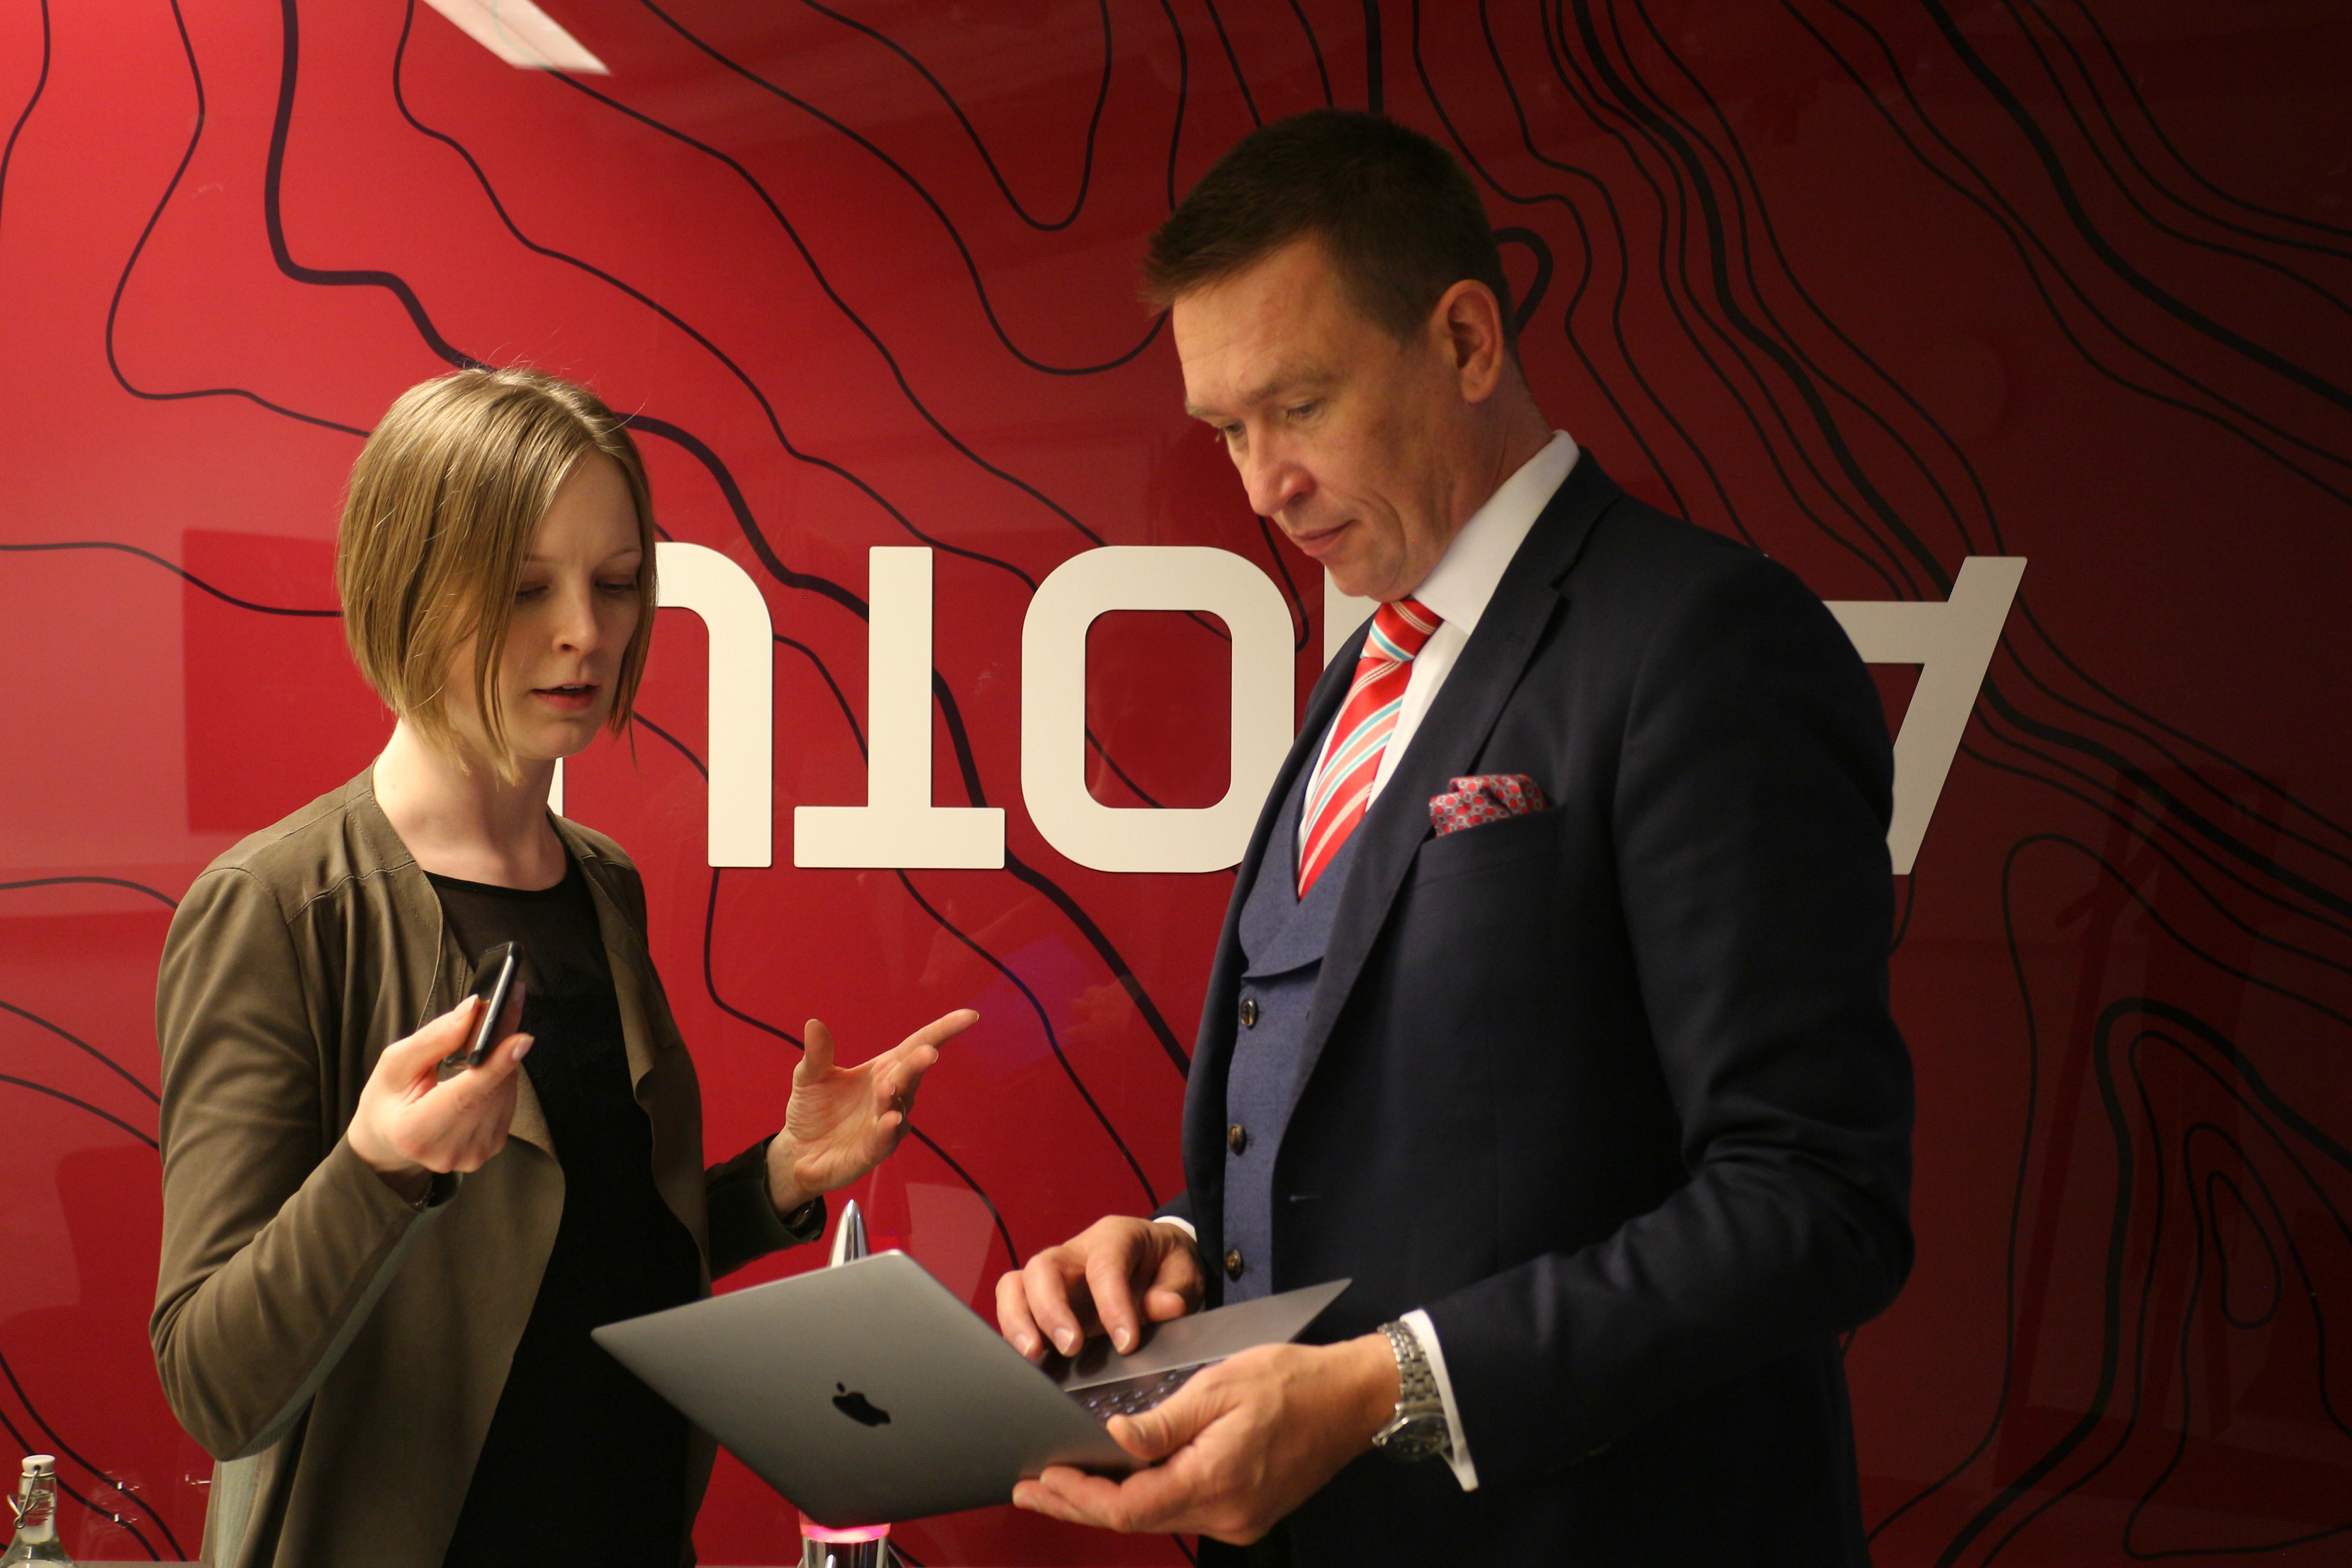 """The Department of Information and Computer Science was ranked among the ten best in the world in AI and machine learning in 2012"" says Mari-Sanna Paukkeri, pictured here with Chair of the Board Tom Packalén. ""The level of research is very high in Finland."""